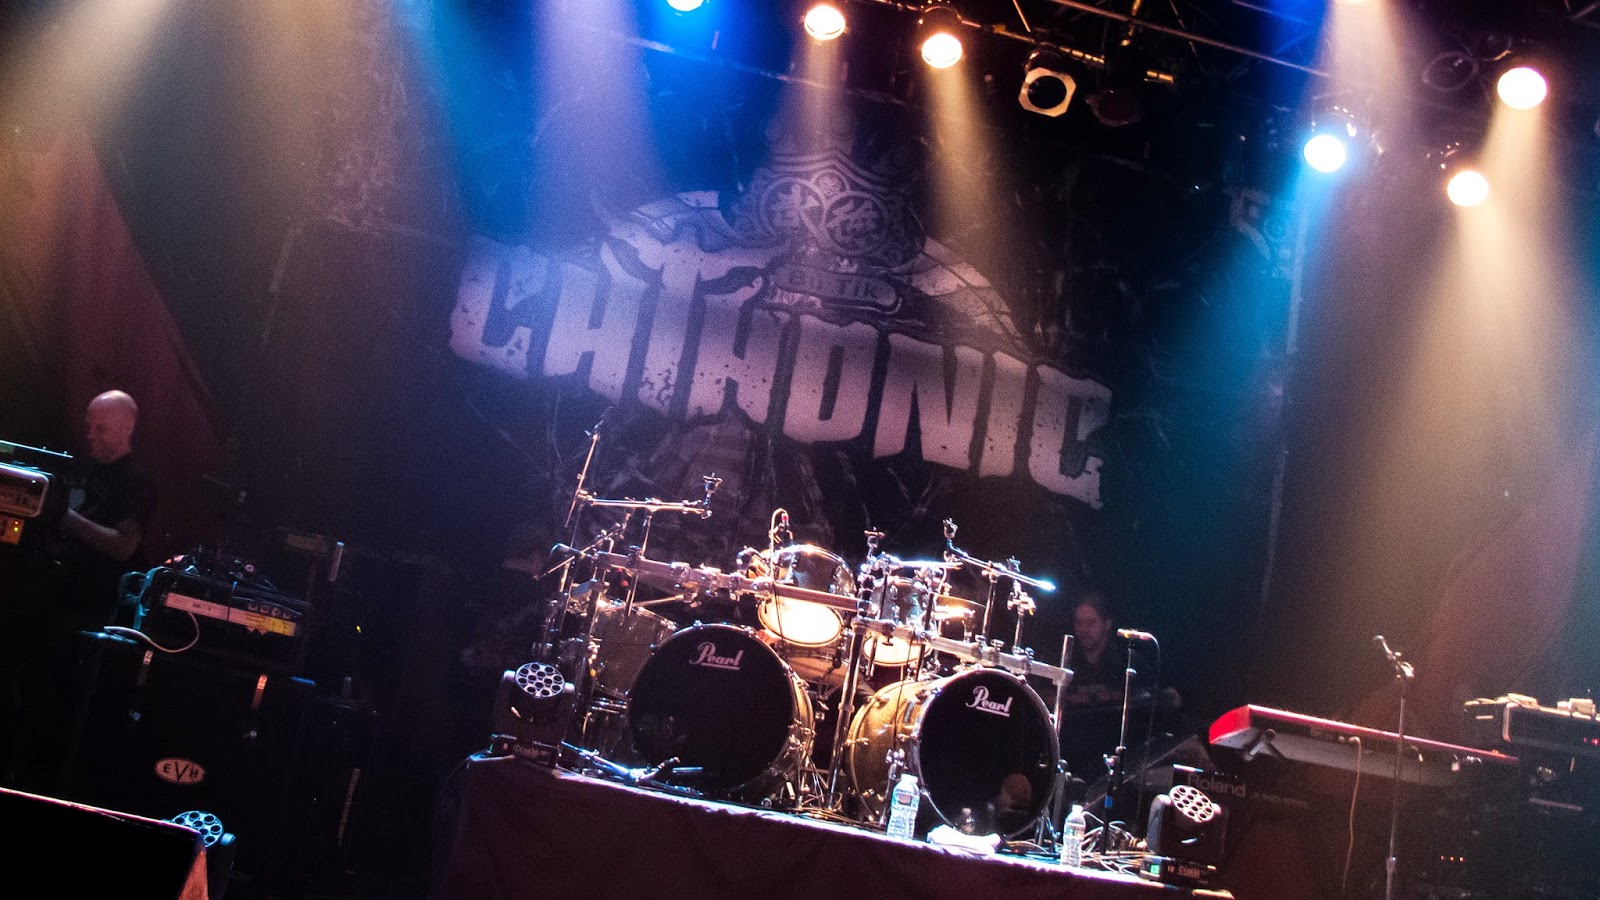 Photos: Chthonic  In Toronto!